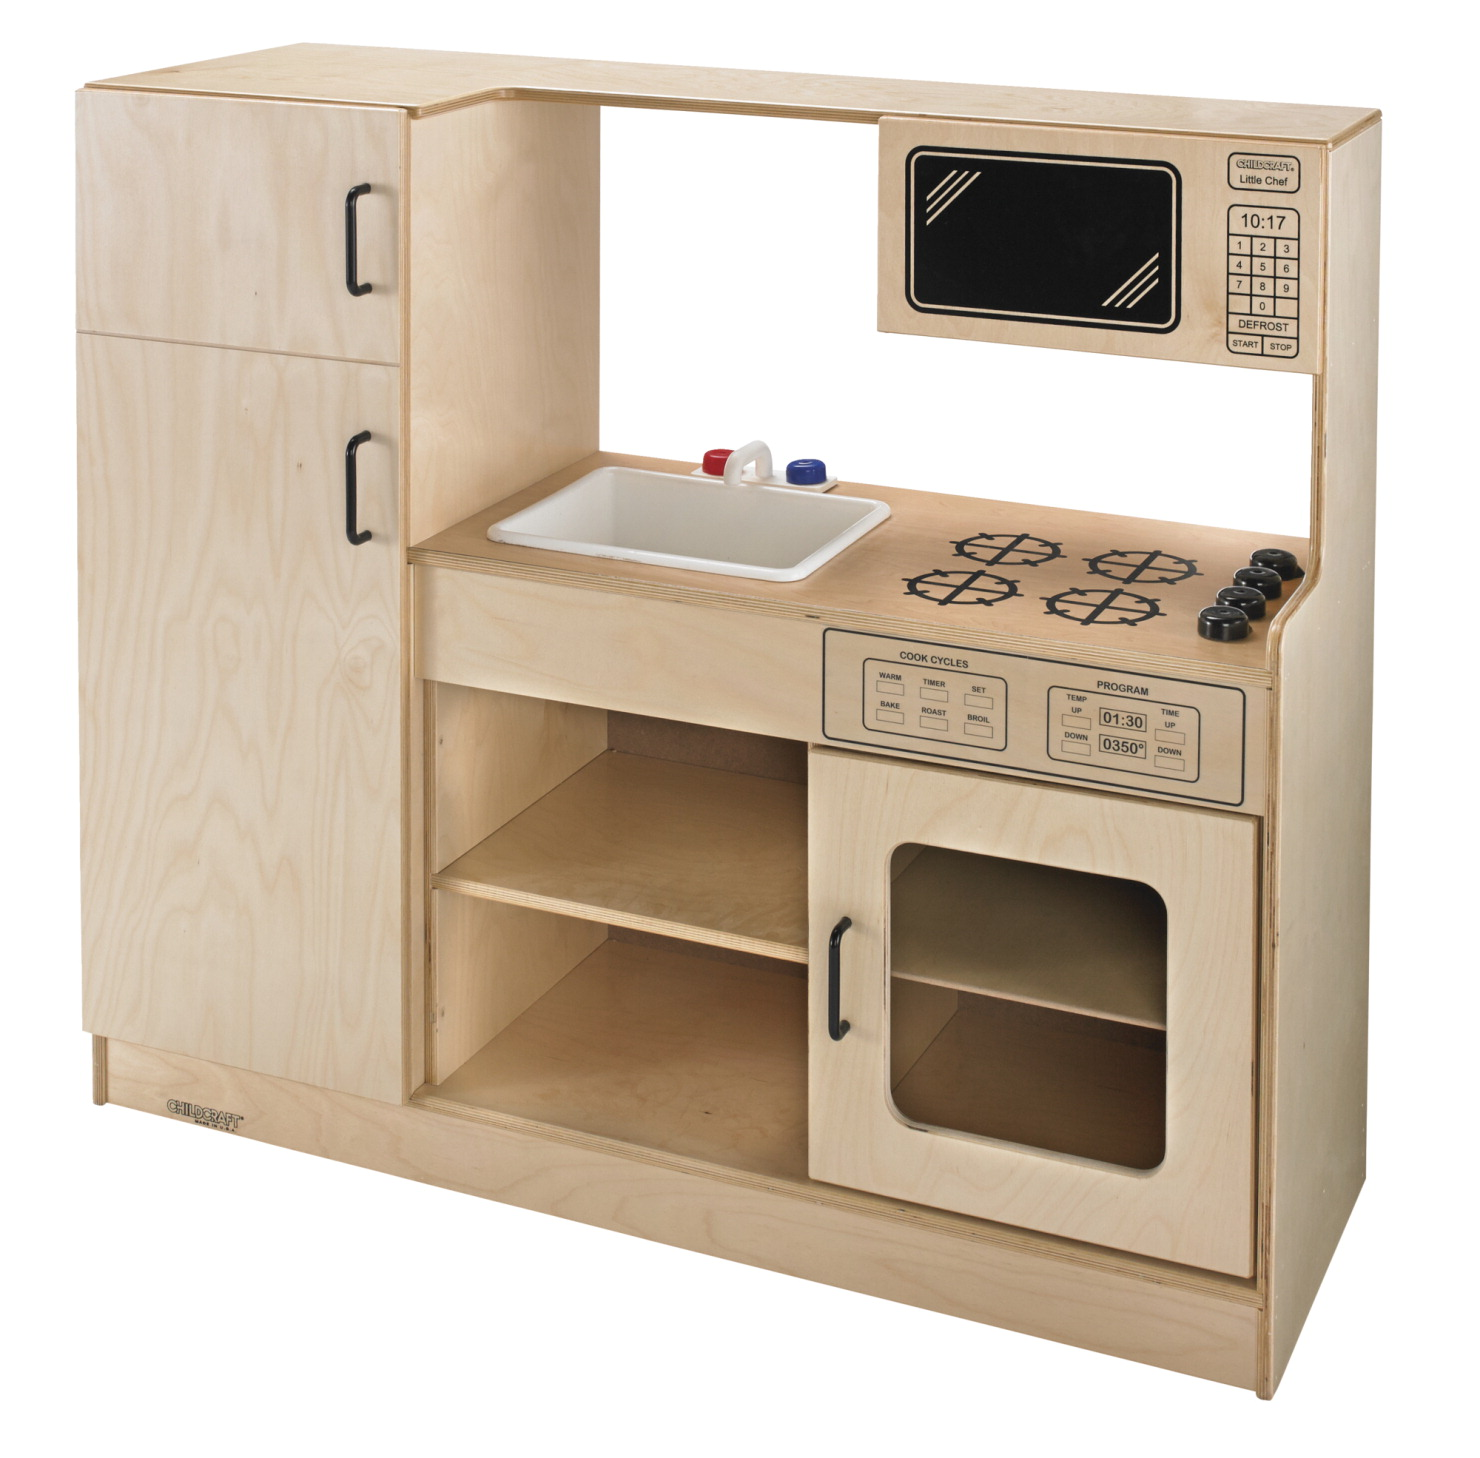 childcraft see thru kitchen center school specialty